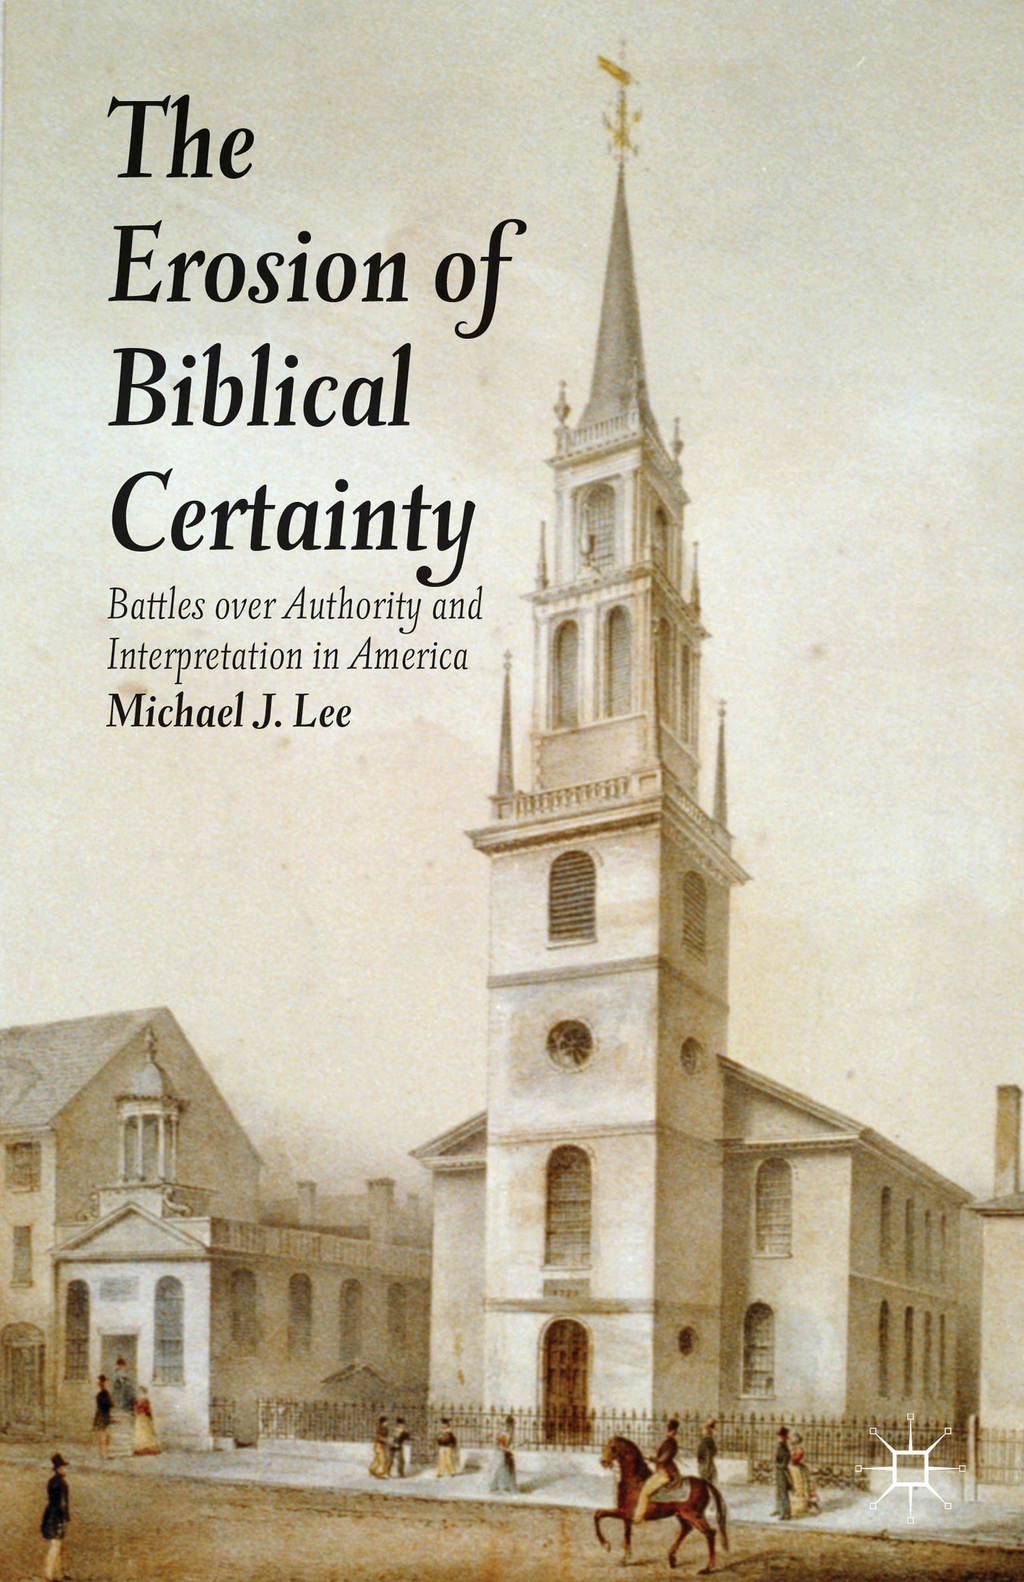 The Erosion of Biblical Certainty Battles over Authority and Interpretation in America